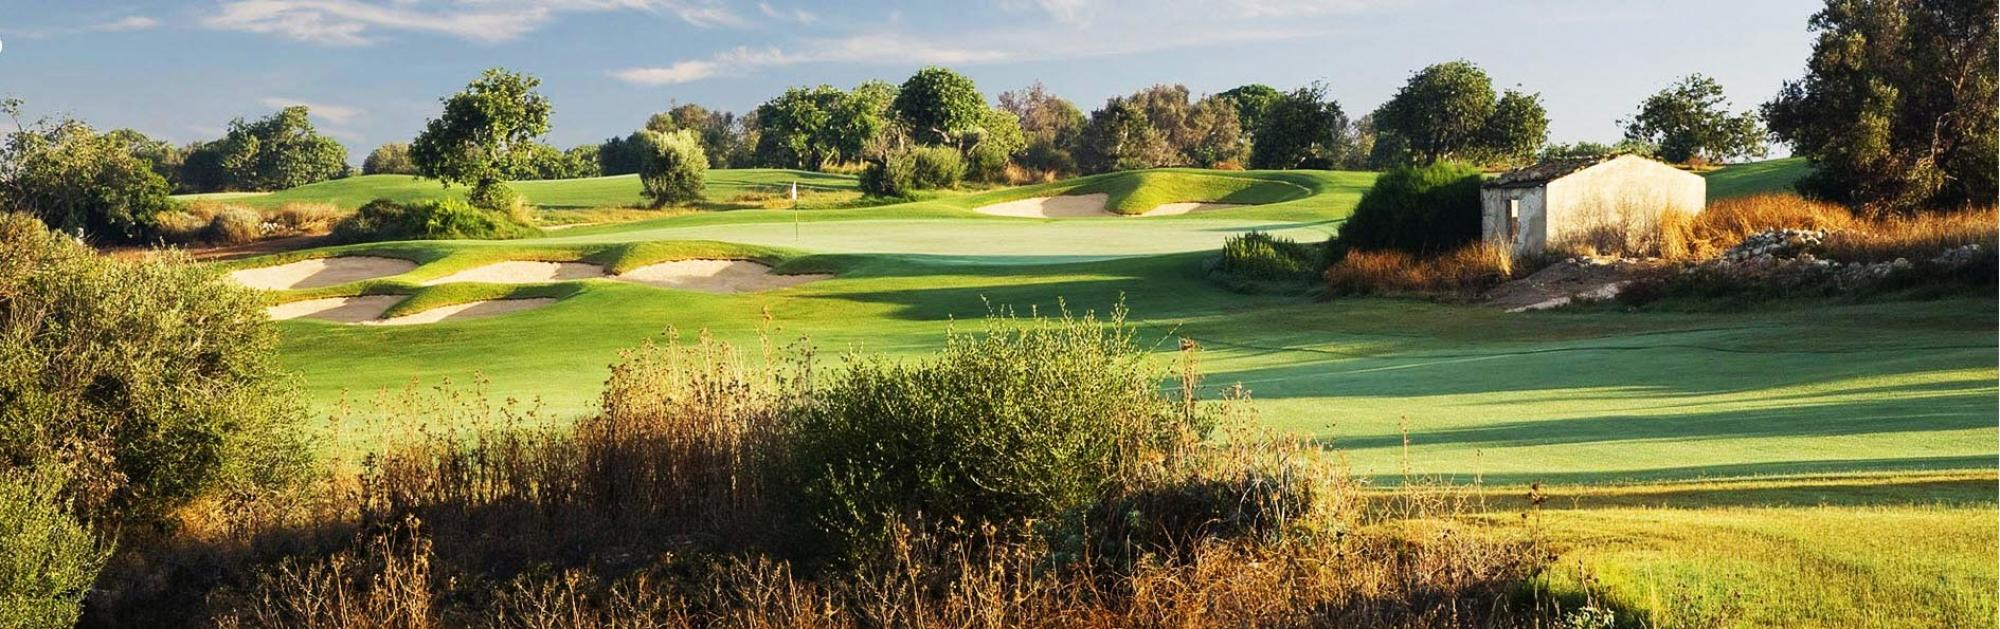 Donnafugata Golf Club provides several of the premiere golf course near Sicily